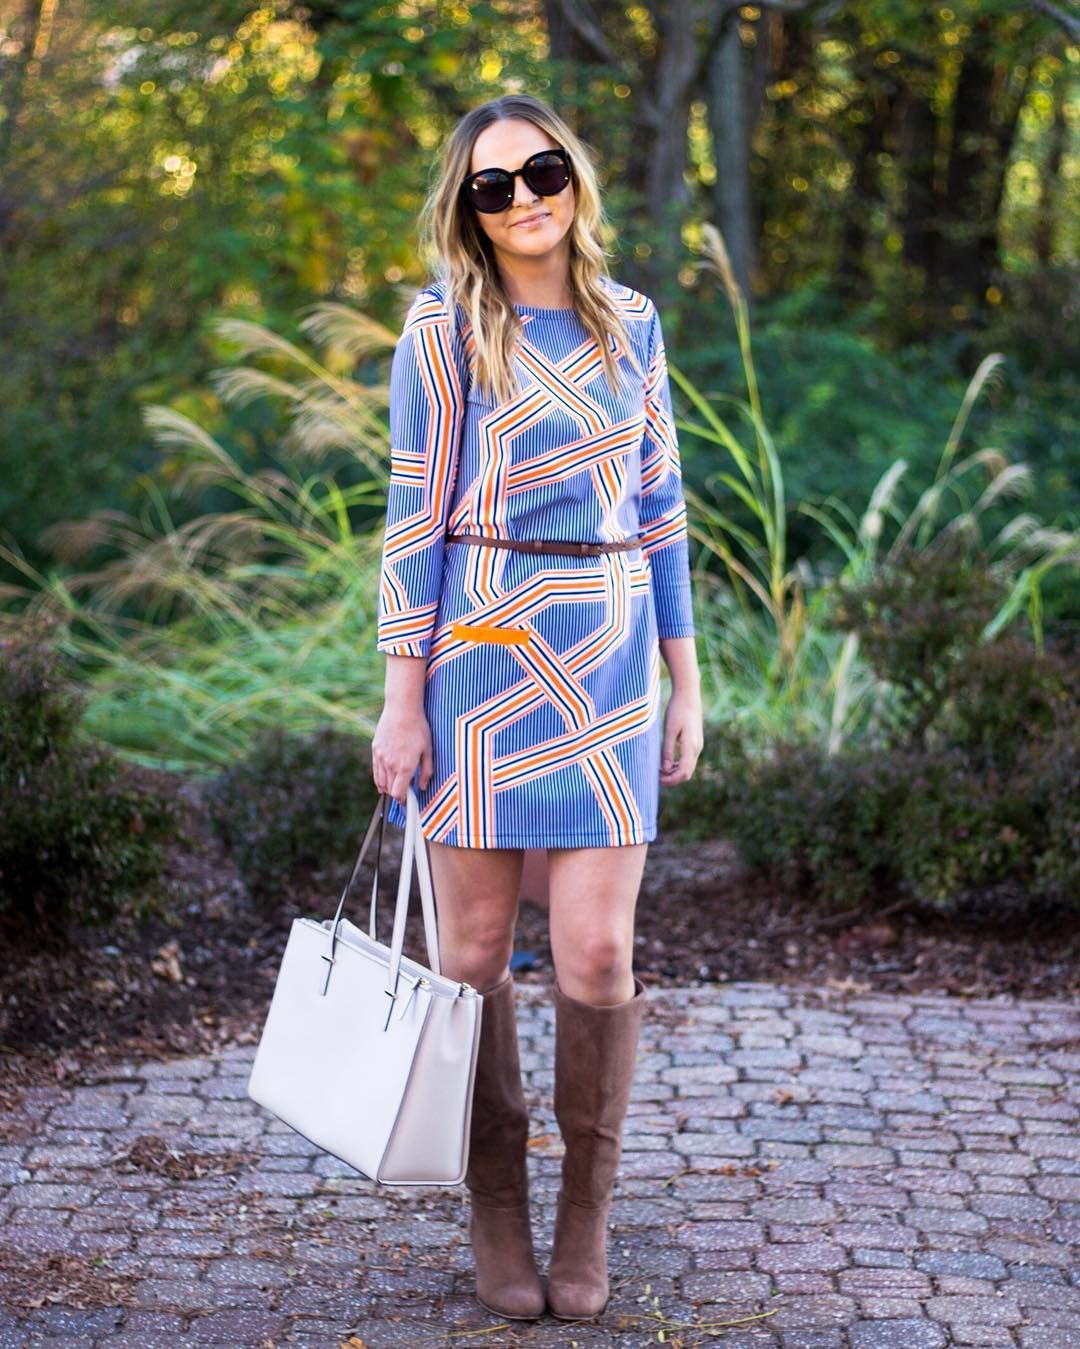 We are loving how @ashncarrington styled this shift  dress 🍂🍃🍁. Add a belt & boots for a whole fall look.  #cabanalife #dress #fall